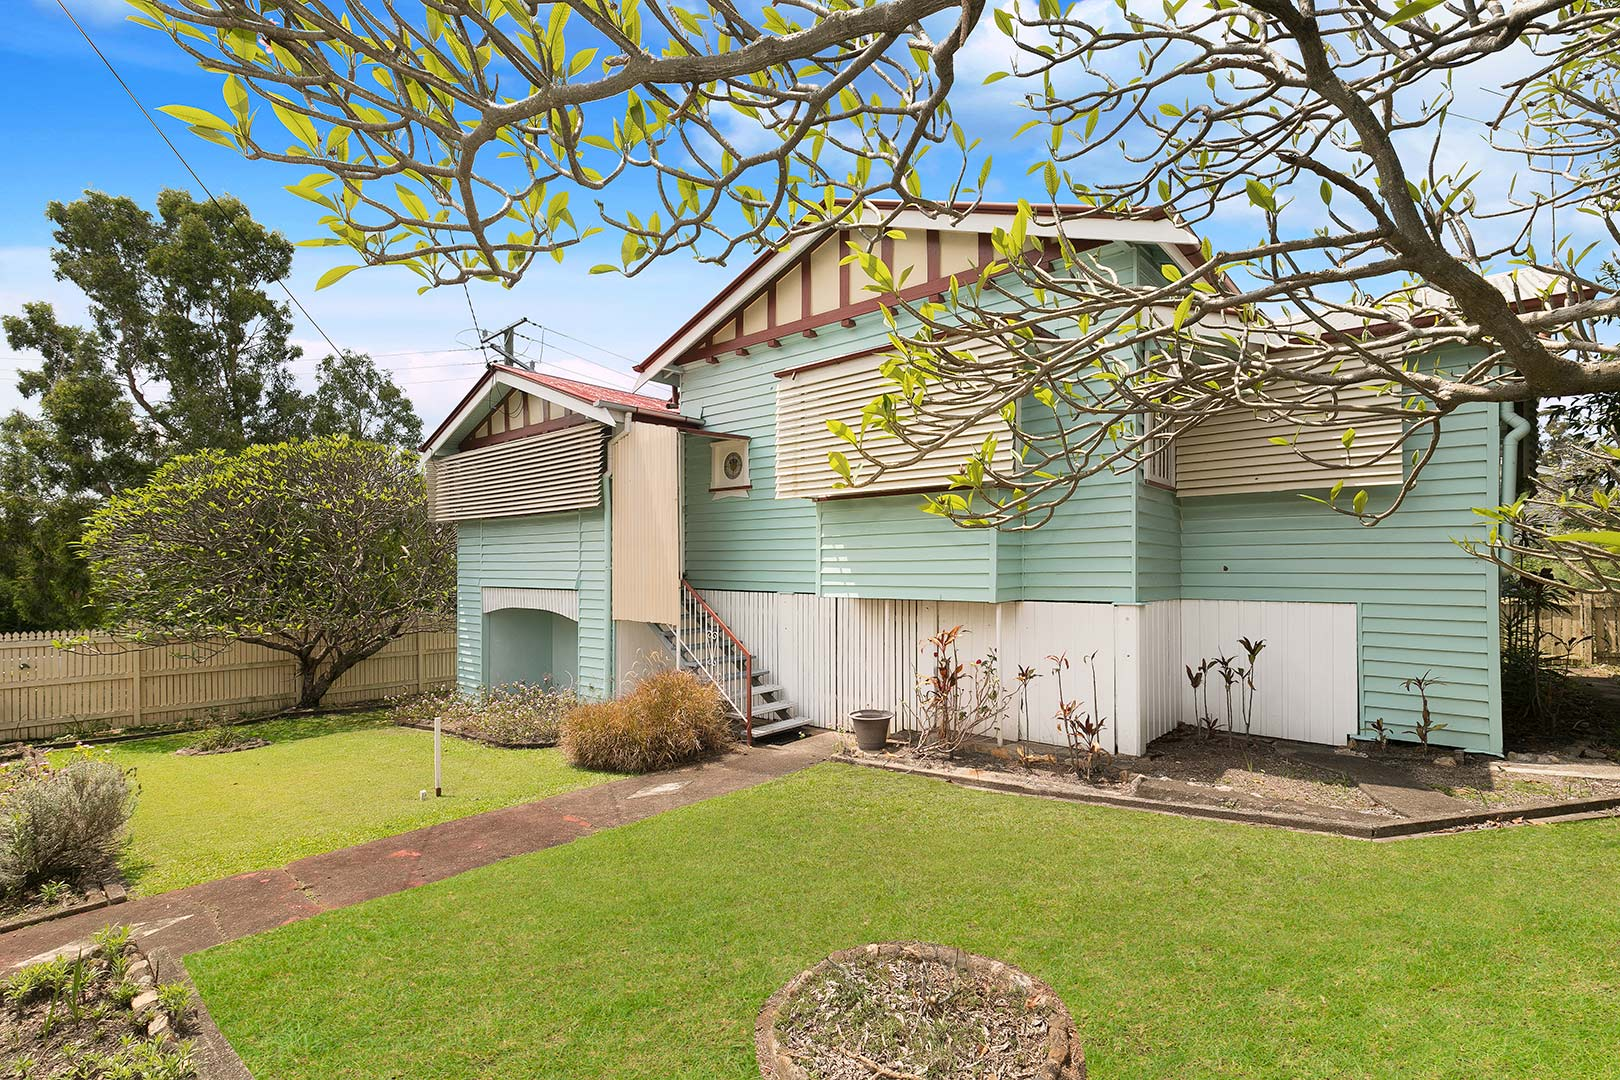 RENOVATE OR REDEVELOP IN THE GRANGE